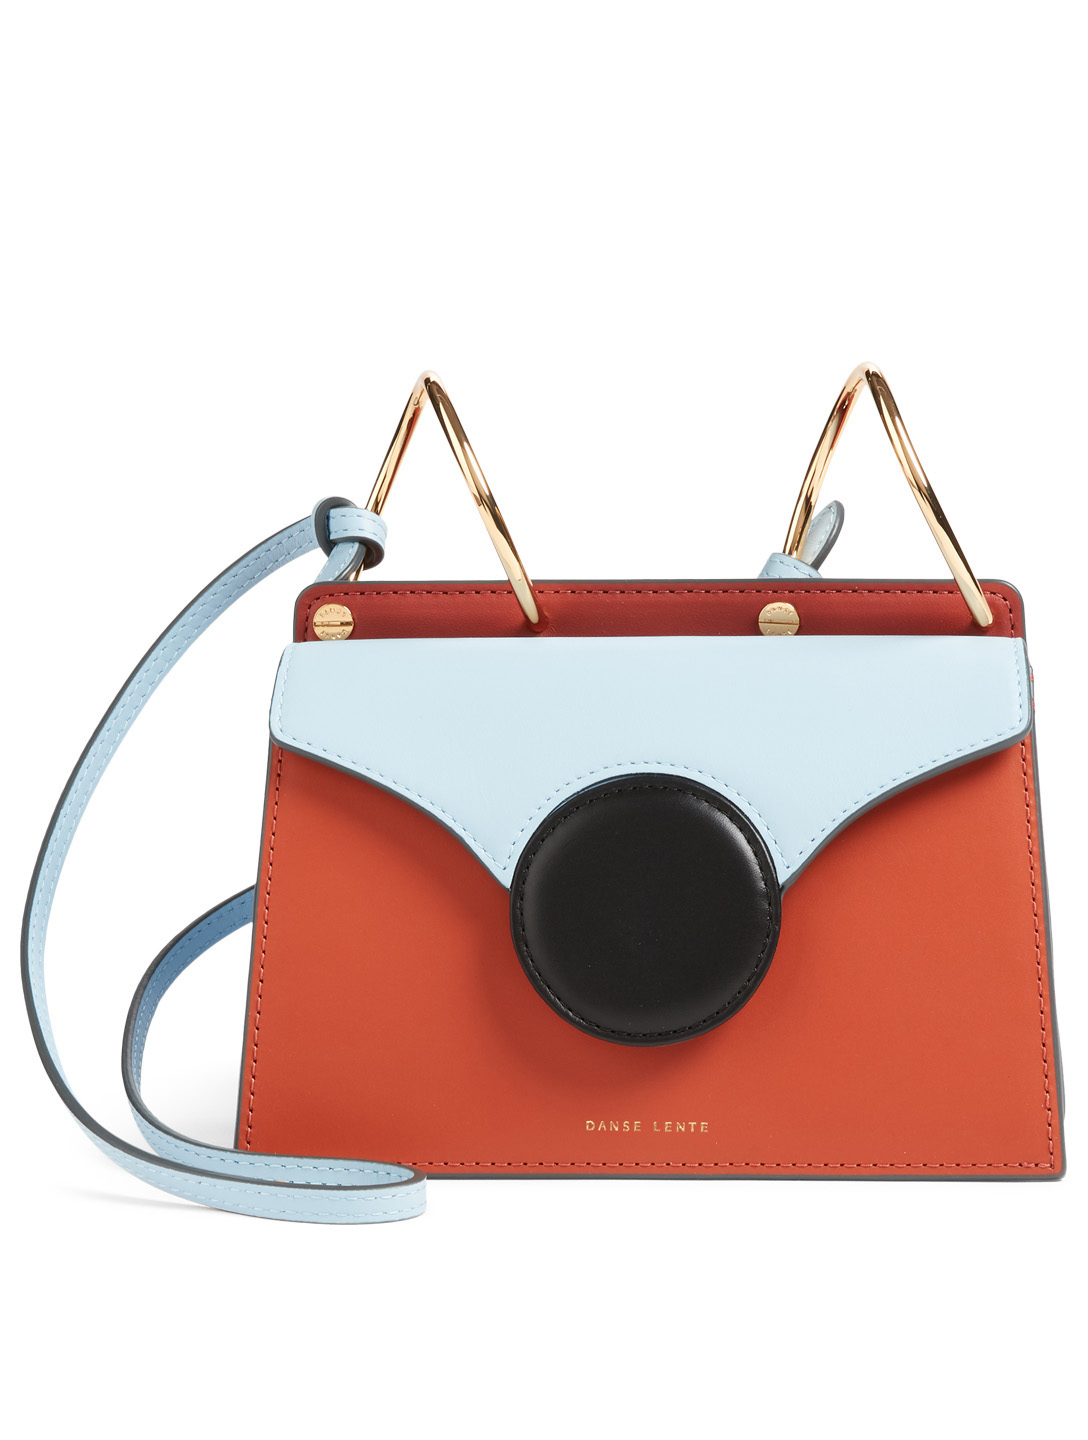 DANSE LENTE Mini Phoebe Leather Crossbody Bag Womens Orange